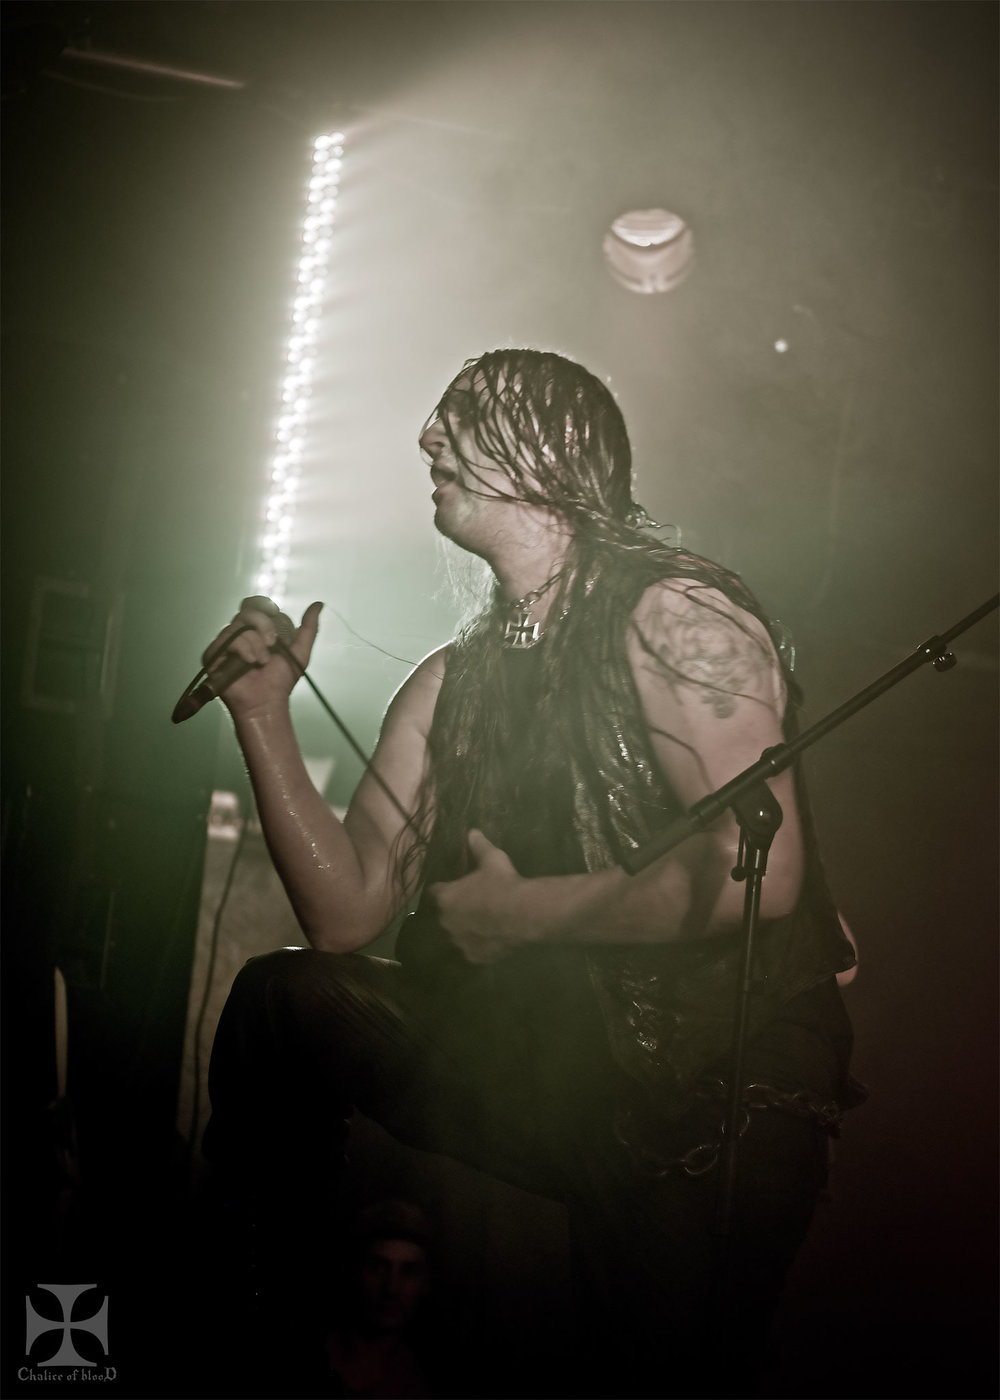 Marduk---231-watermarked.jpg